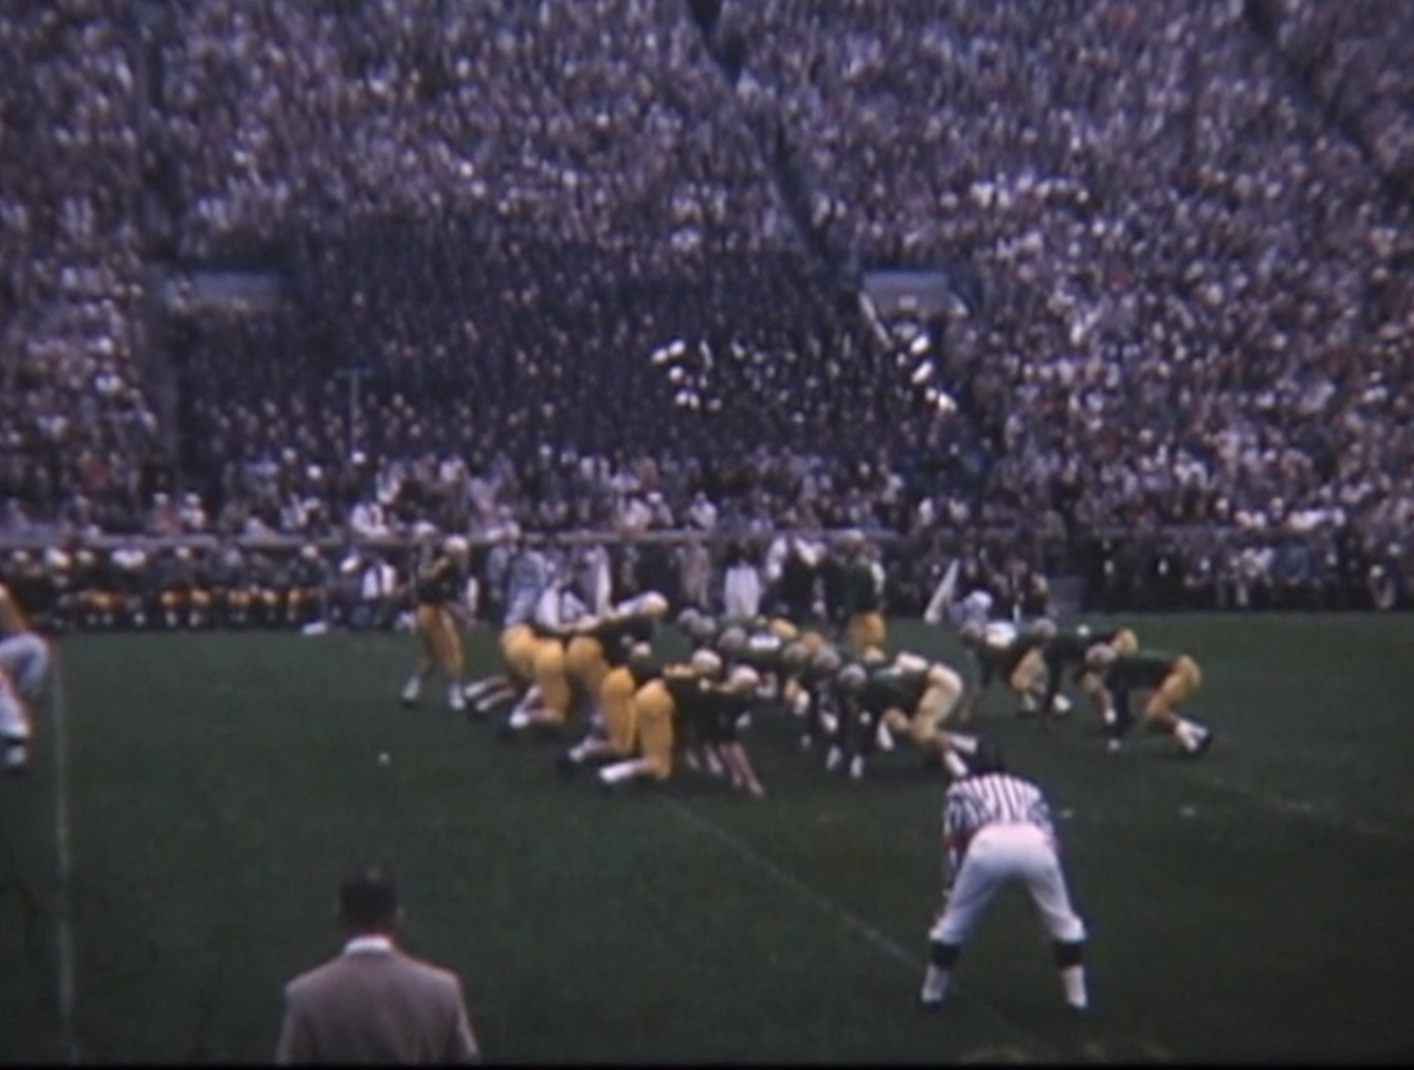 11 Oct  1958: John Hickey's Color Movie of the Army at Notre